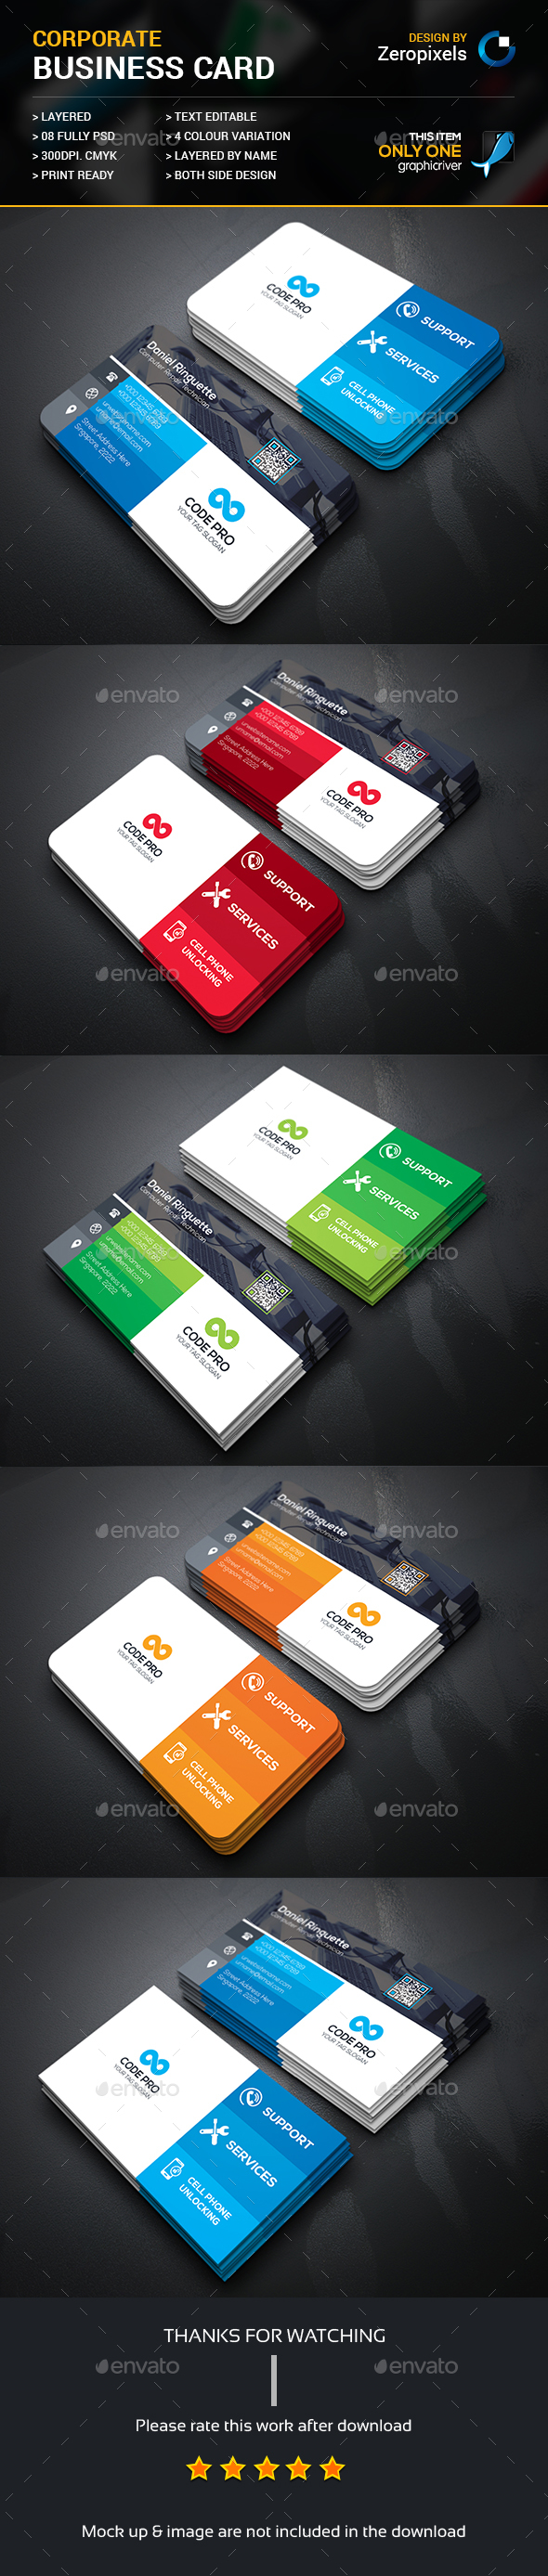 Computer Repair Business Card Template PSD. Download here: http ...